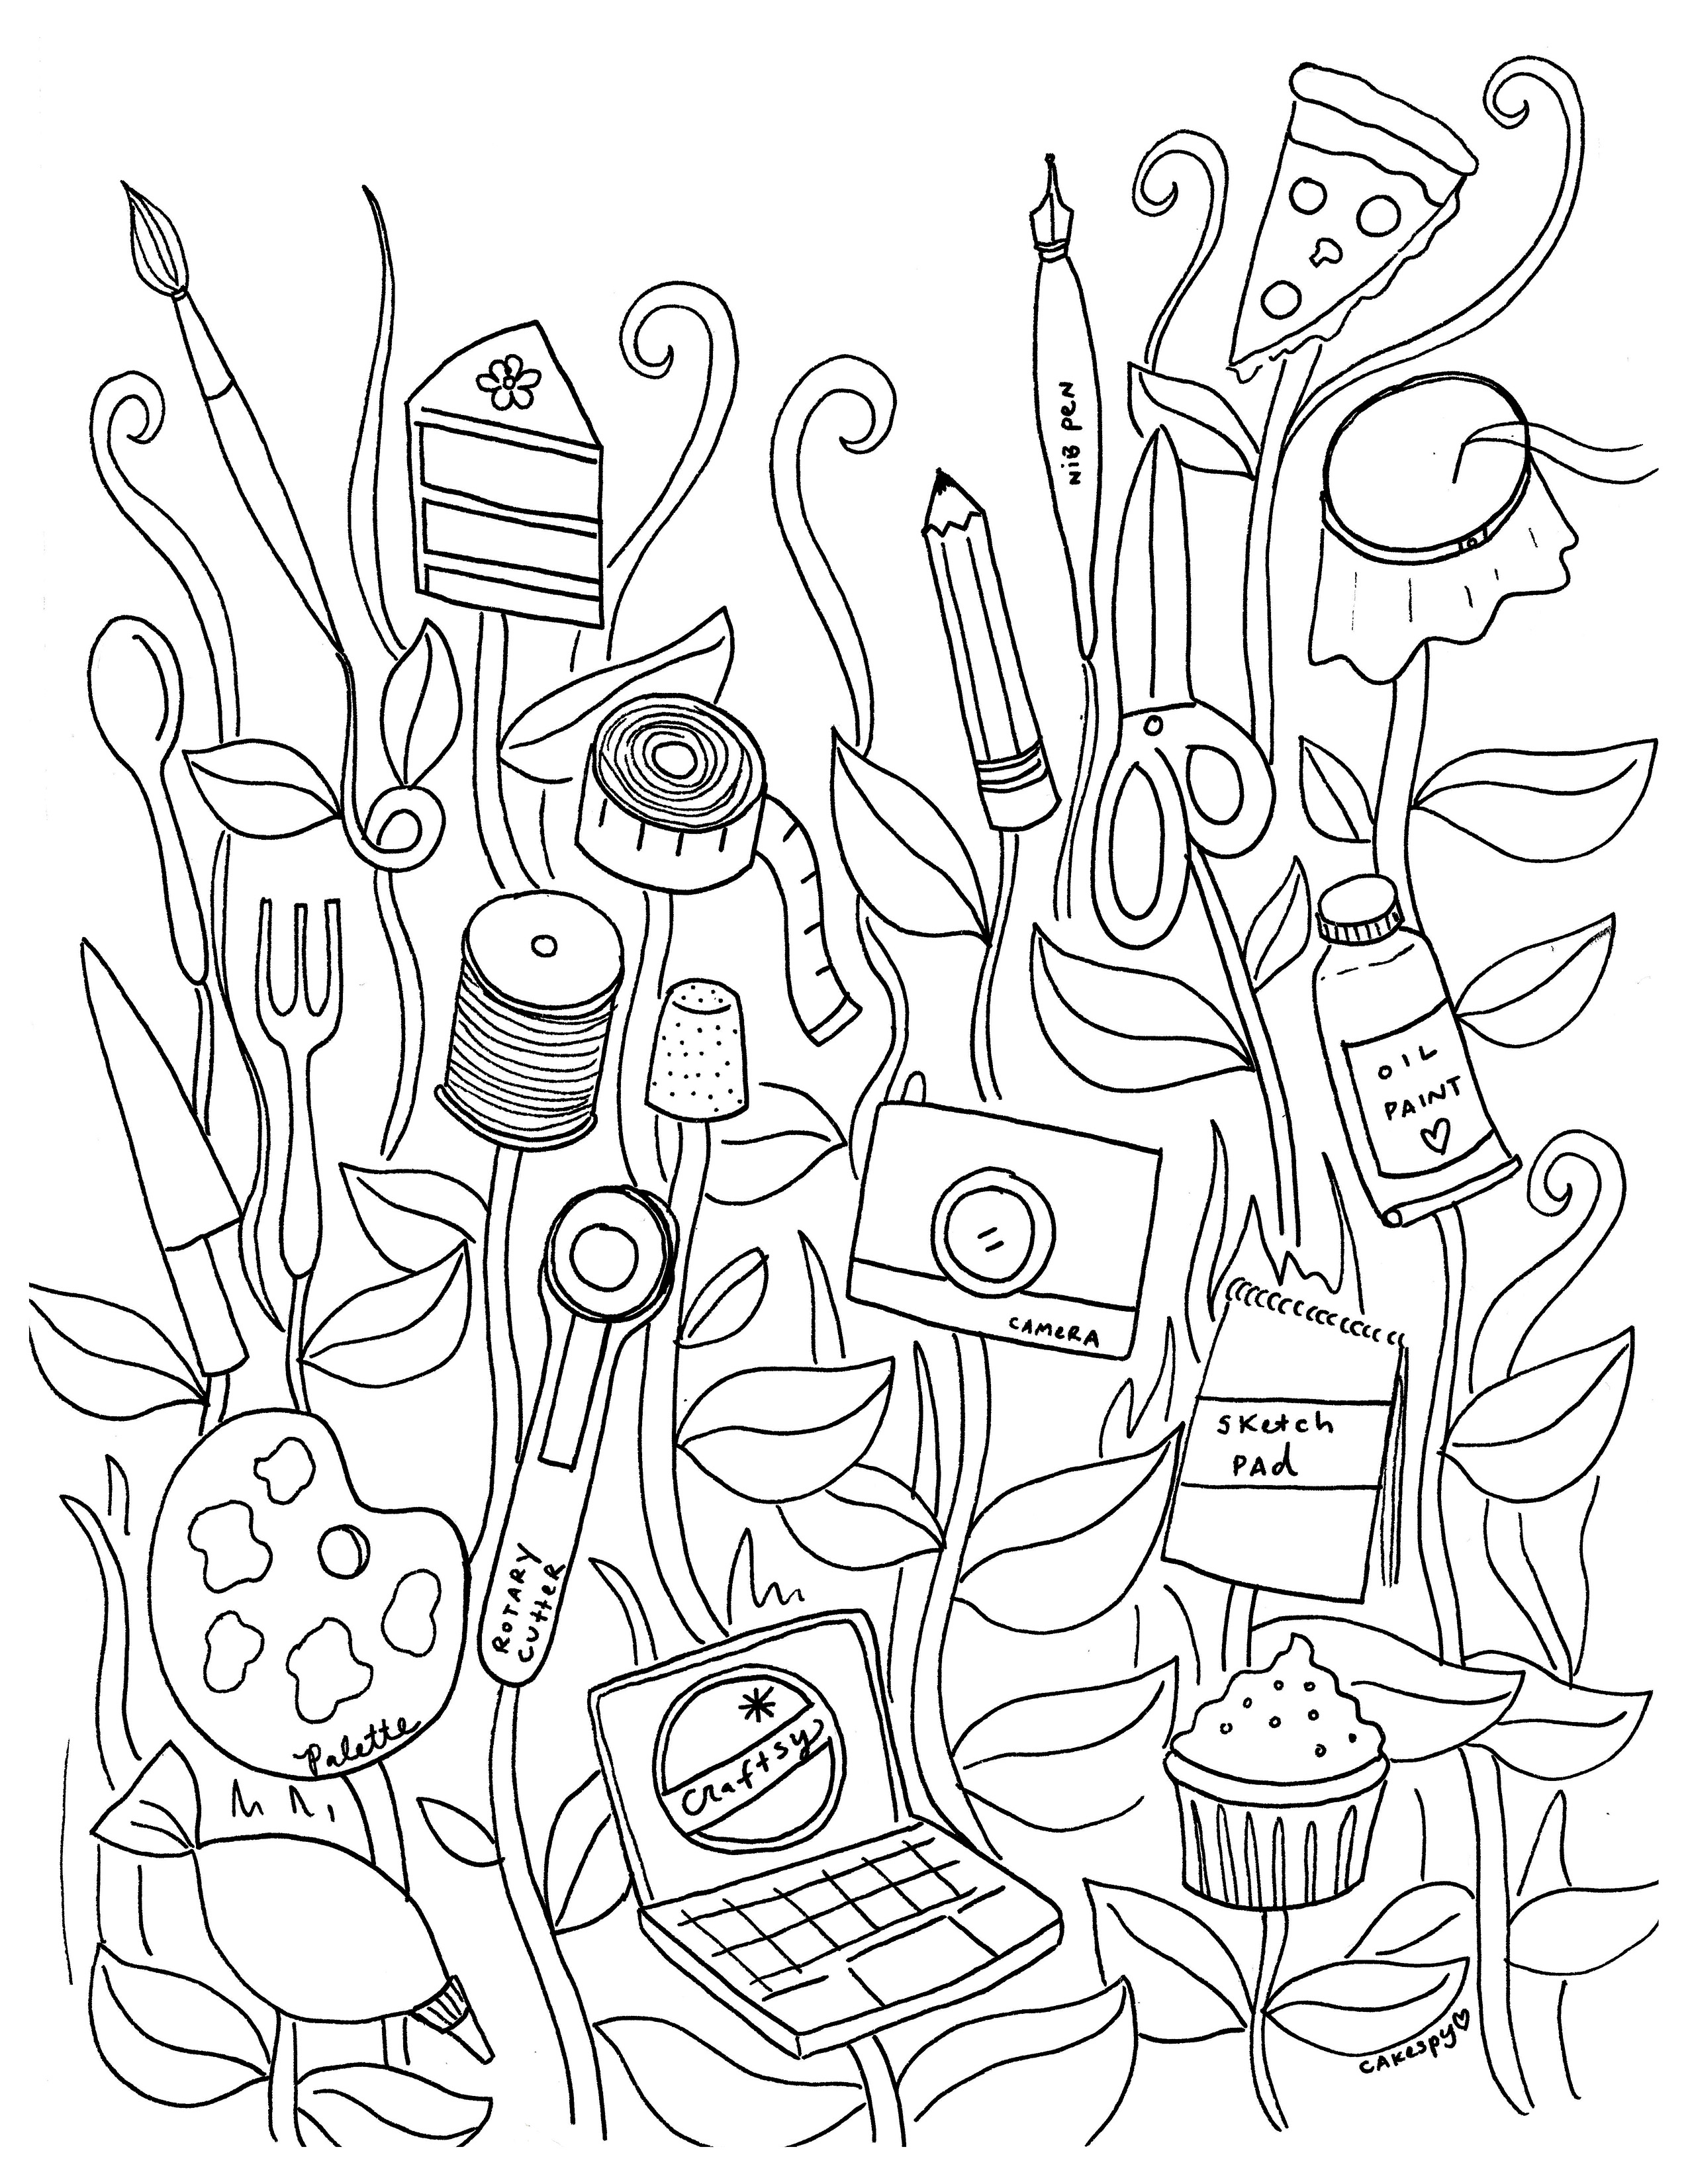 Adult Coloring Book Pages - Free Coloring Book Pages for Adults